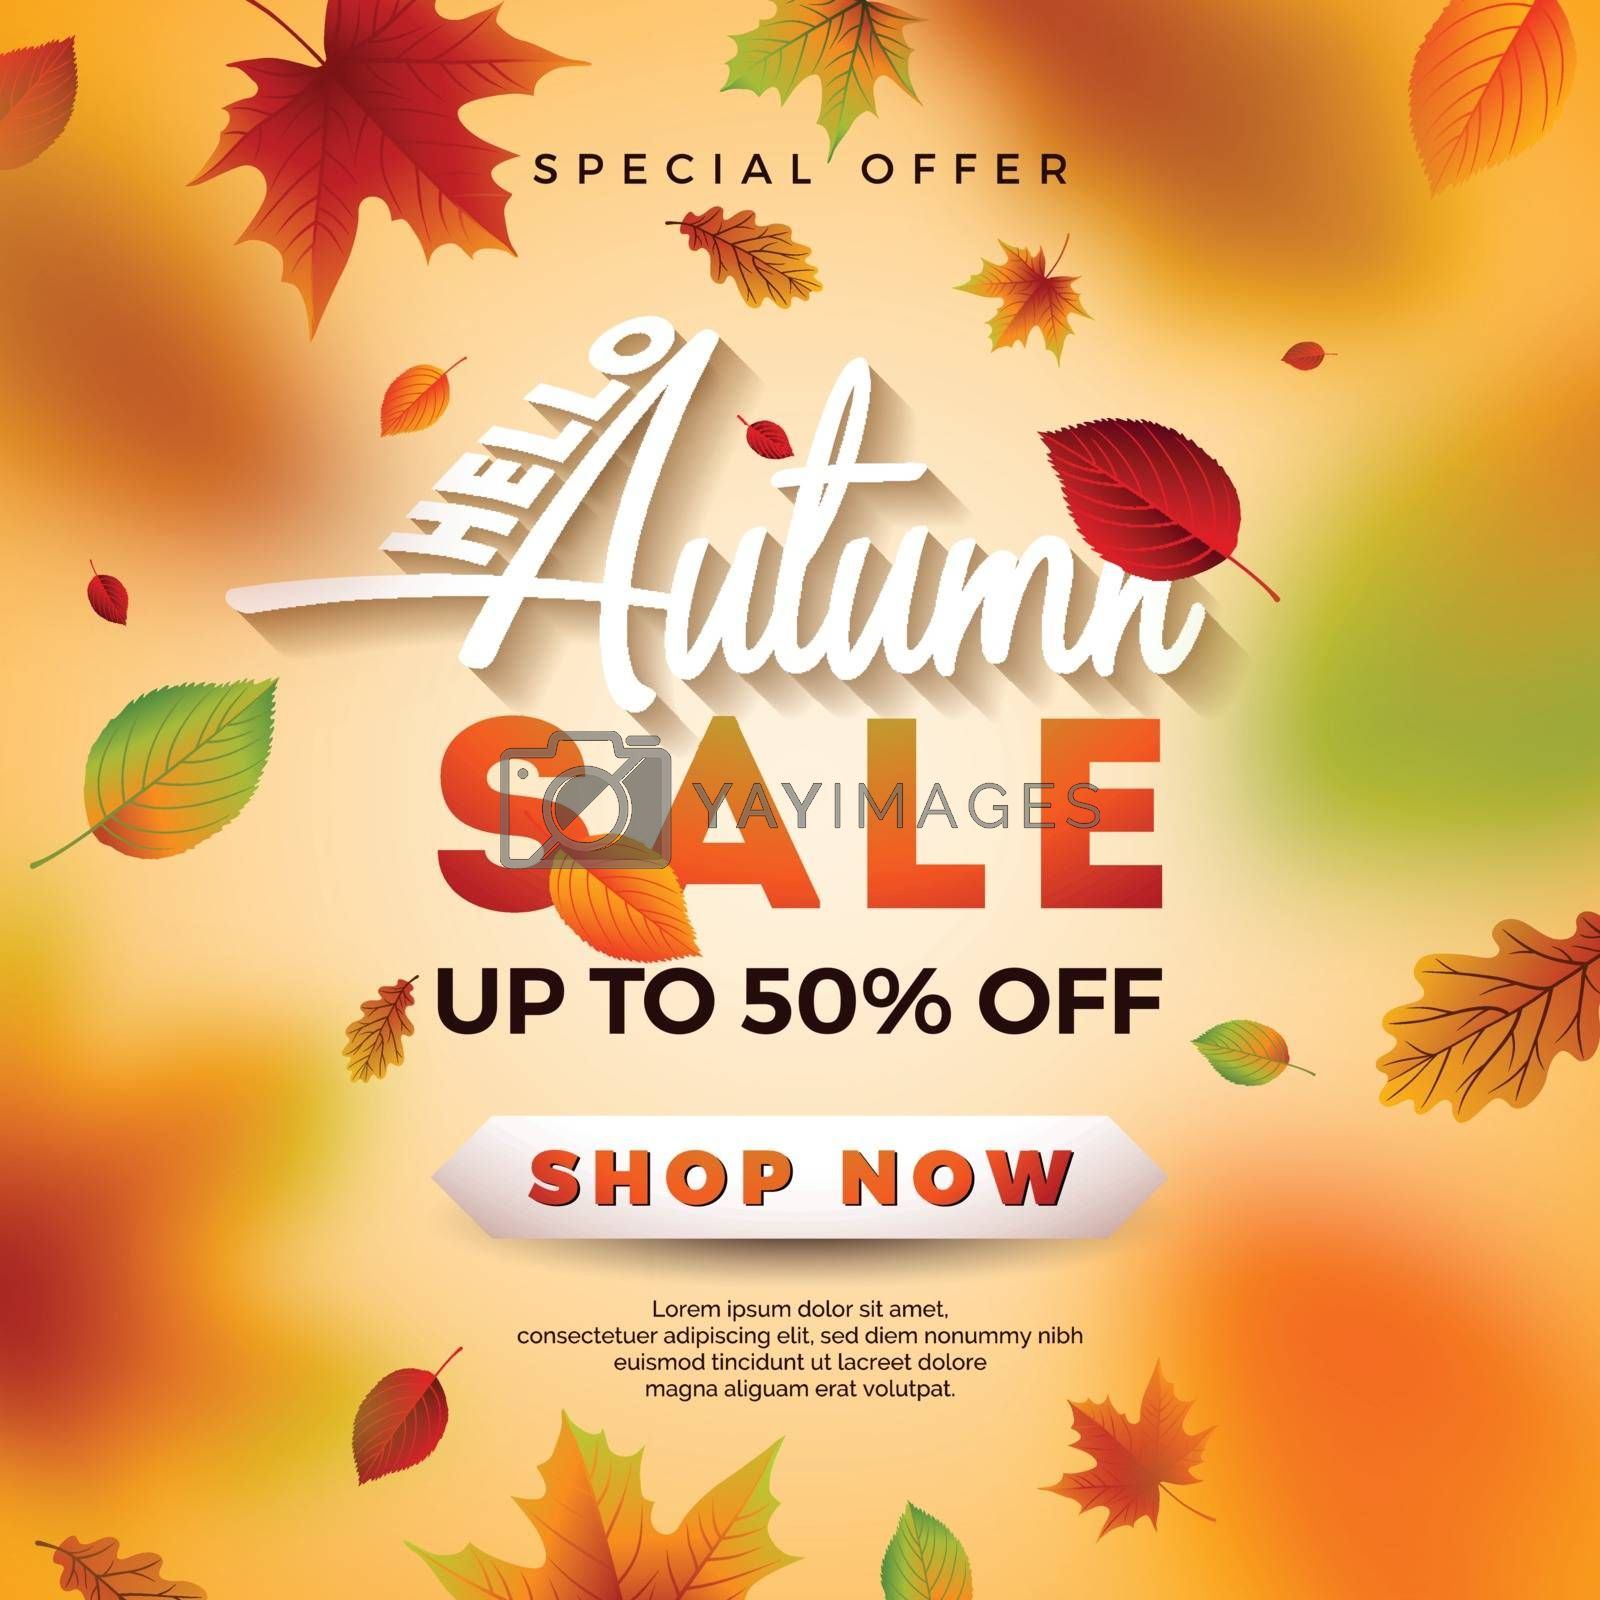 Autumn Sale Design with Falling Leaves and Lettering on Light Background. Autumnal Vector Illustration with Special Offer Typography Elements for Coupon, Voucher, Banner, Flyer, Promotional Poster or Greeting Card